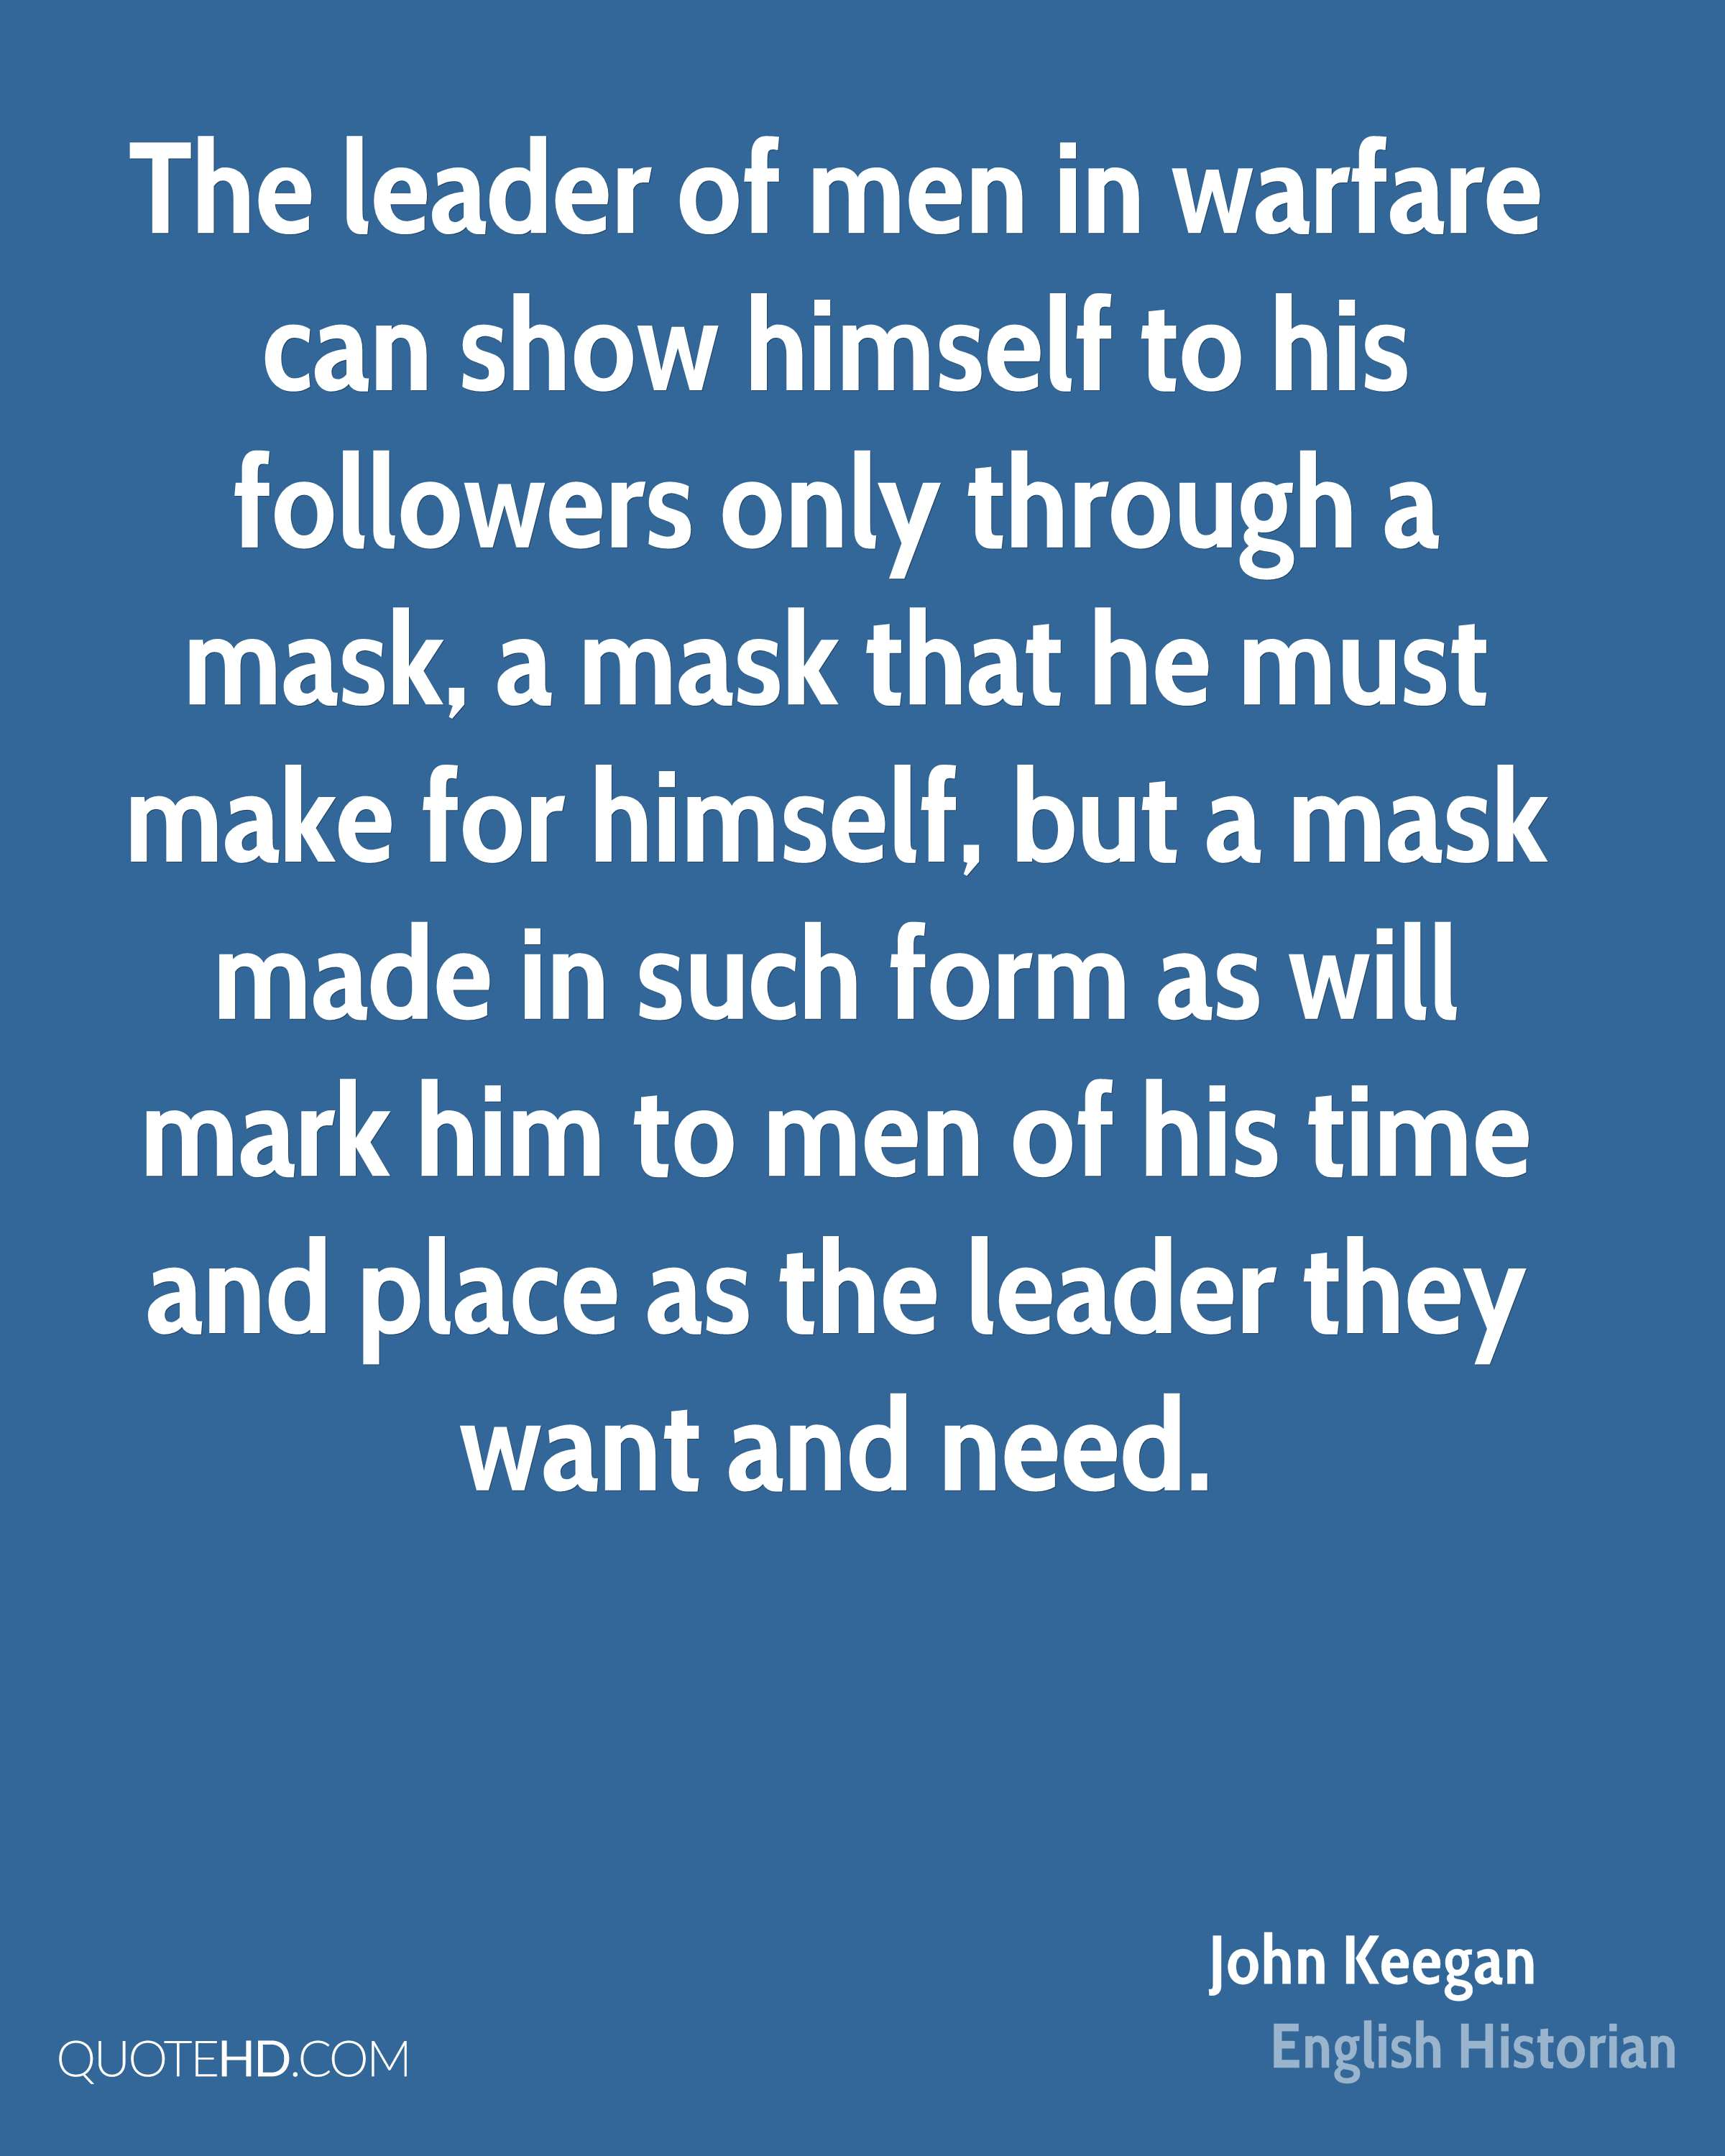 The leader of men in warfare can show himself to his followers only through a mask, a mask that he must make for himself, but a mask made in such form as will mark him to men of his time and place as the leader they want and need.